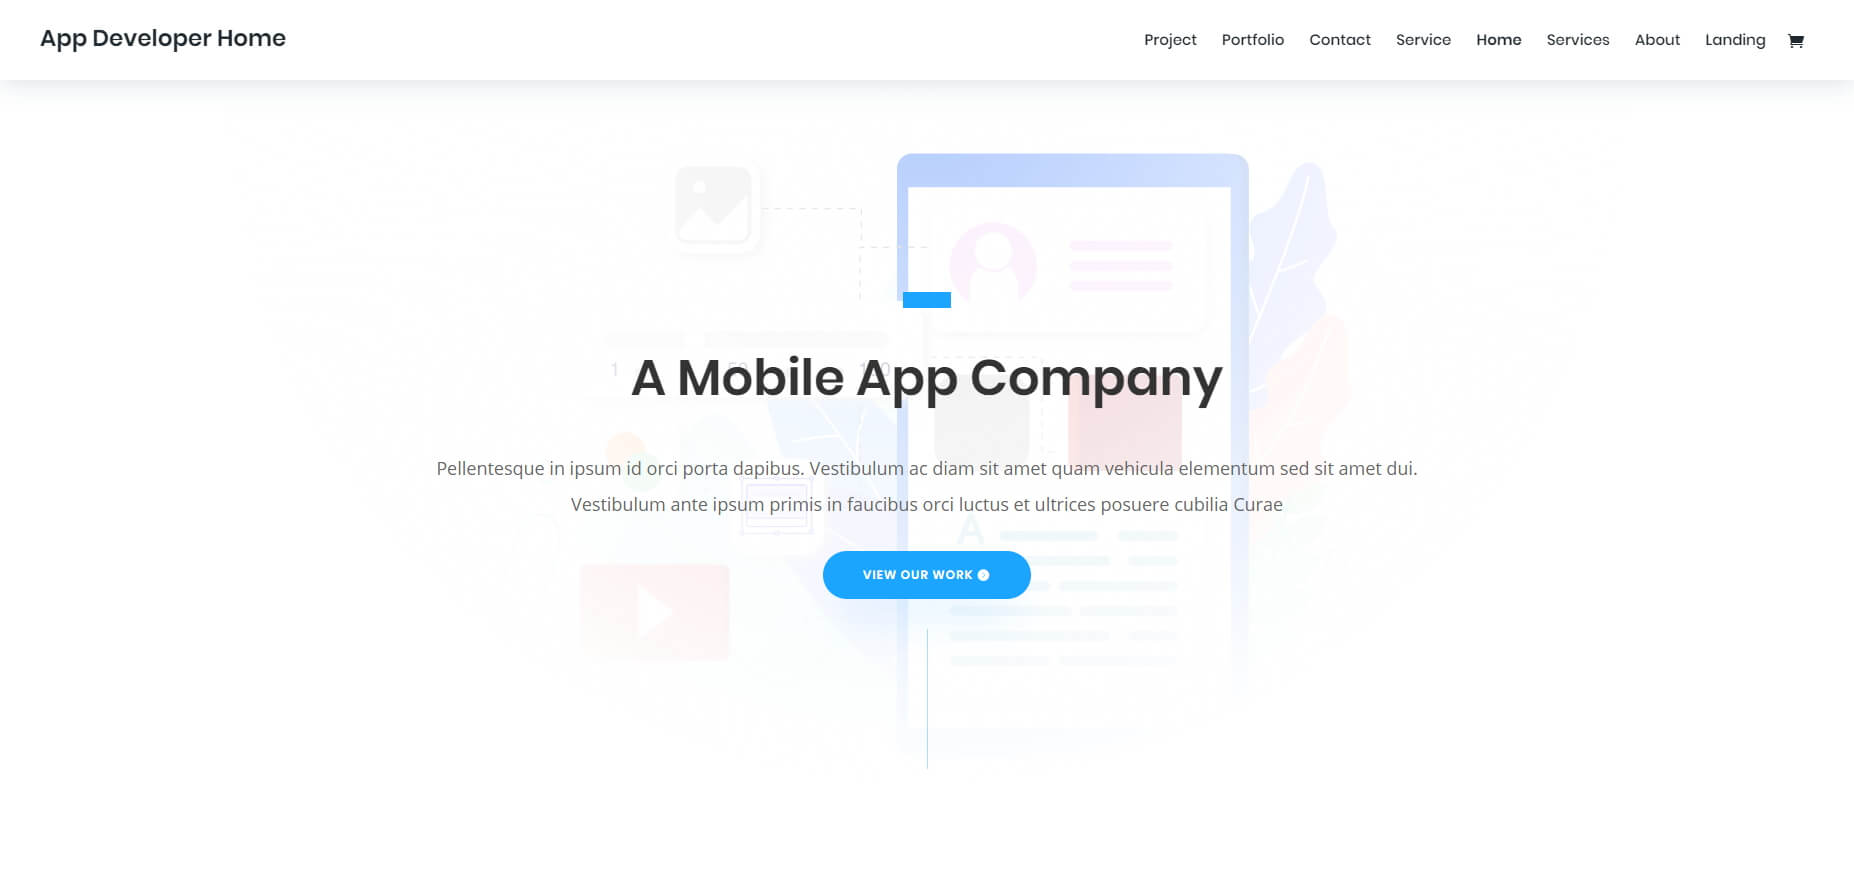 screencapture-elegantthemes-layouts-technology-app-developer-home-page-live-demo-2020-06-03-18_00_53